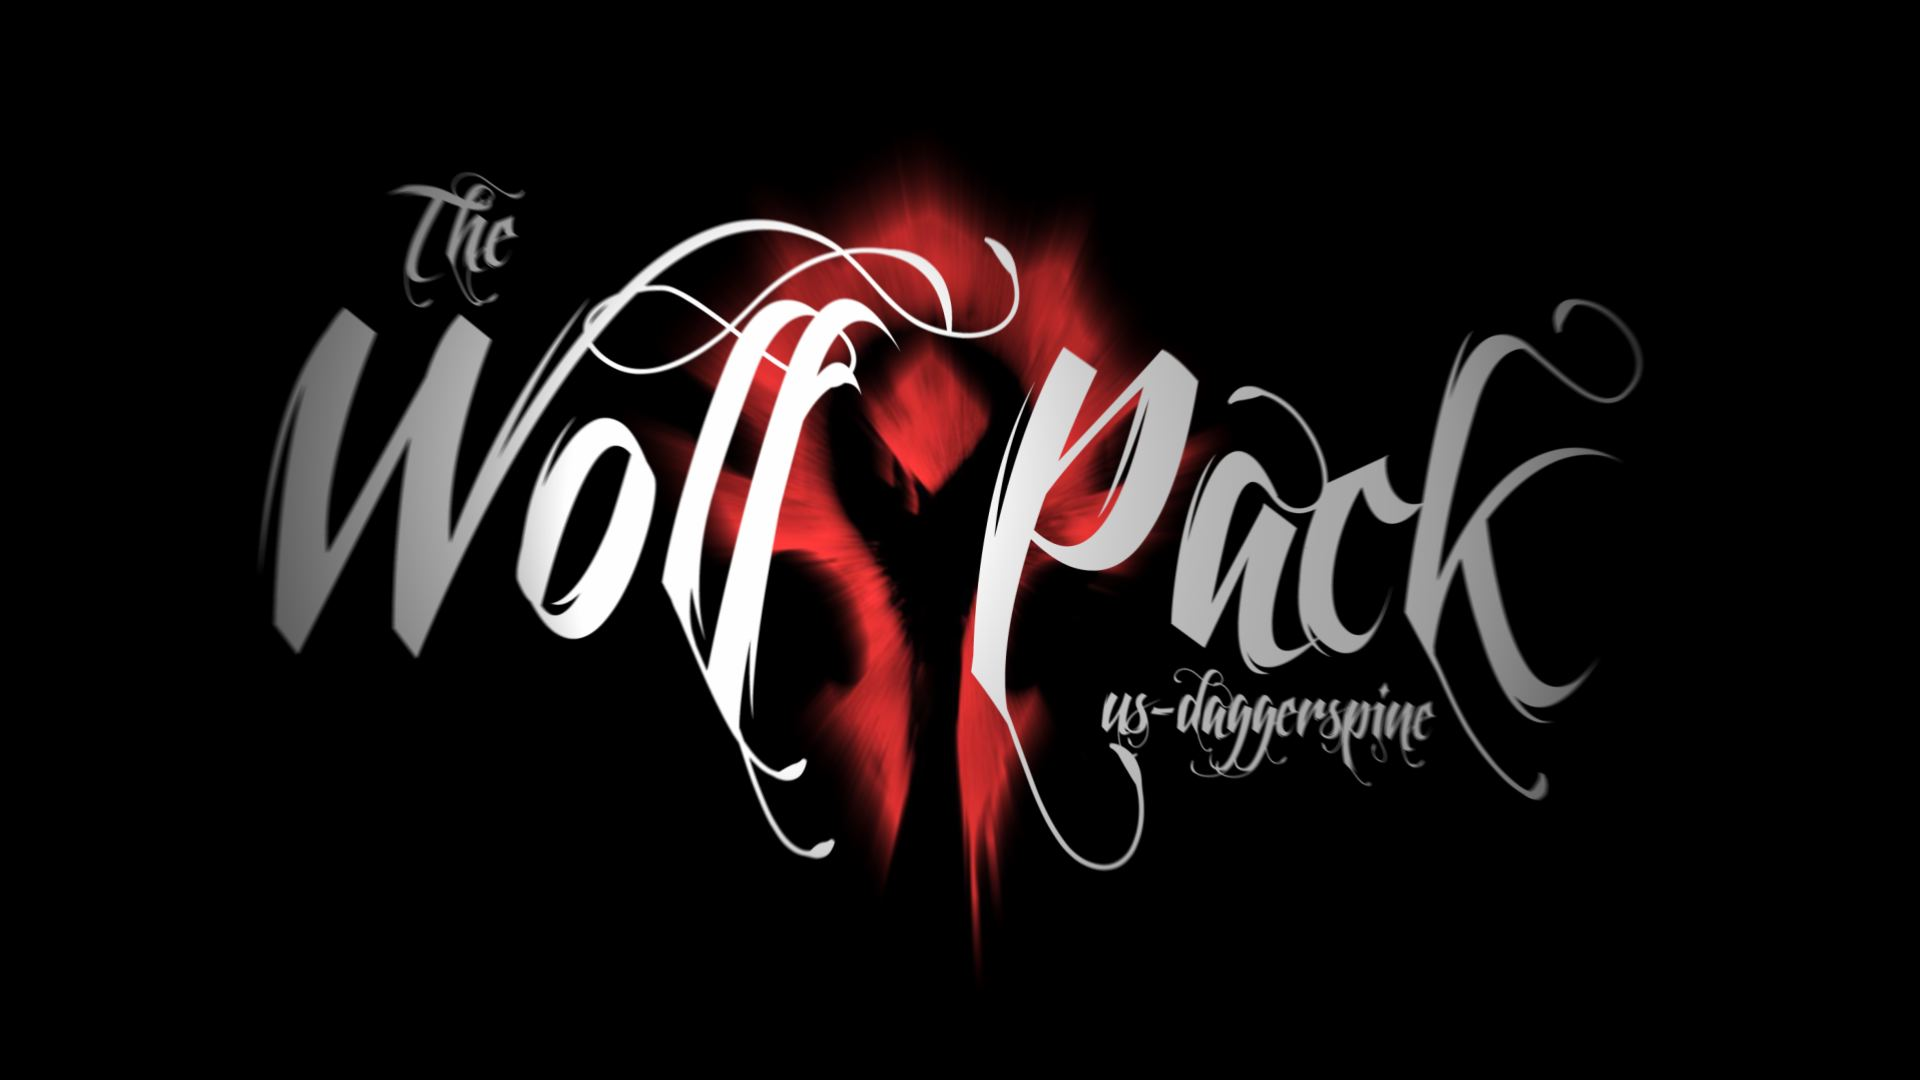 NWO Wolfpack Wallpaper - WallpaperSafari